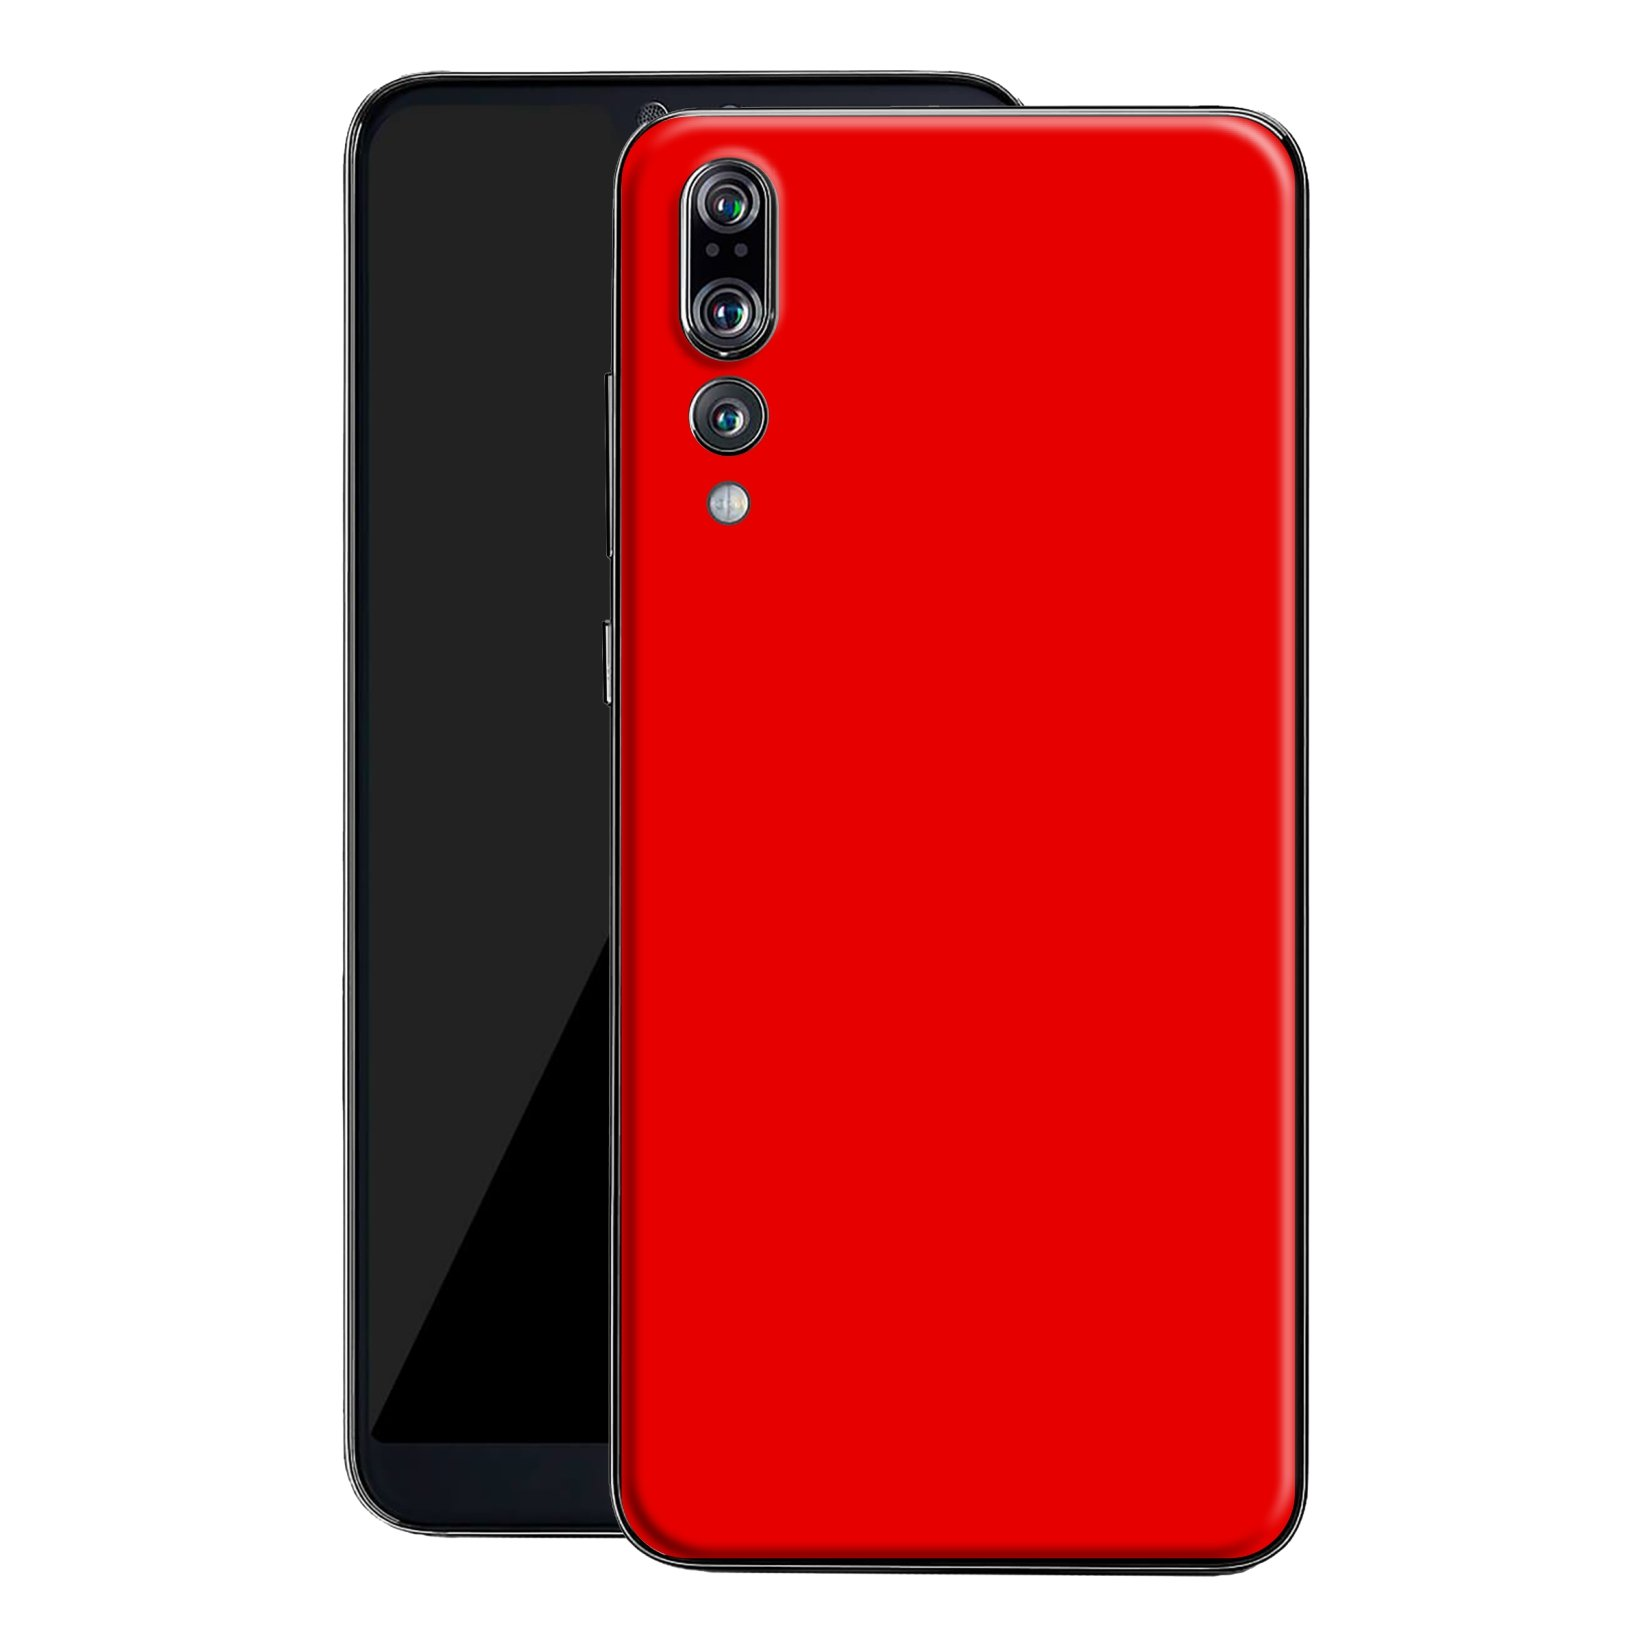 Huawei P20 PRO Red Matt Skin, Decal, Wrap, Protector, Cover by EasySkinz | EasySkinz.com